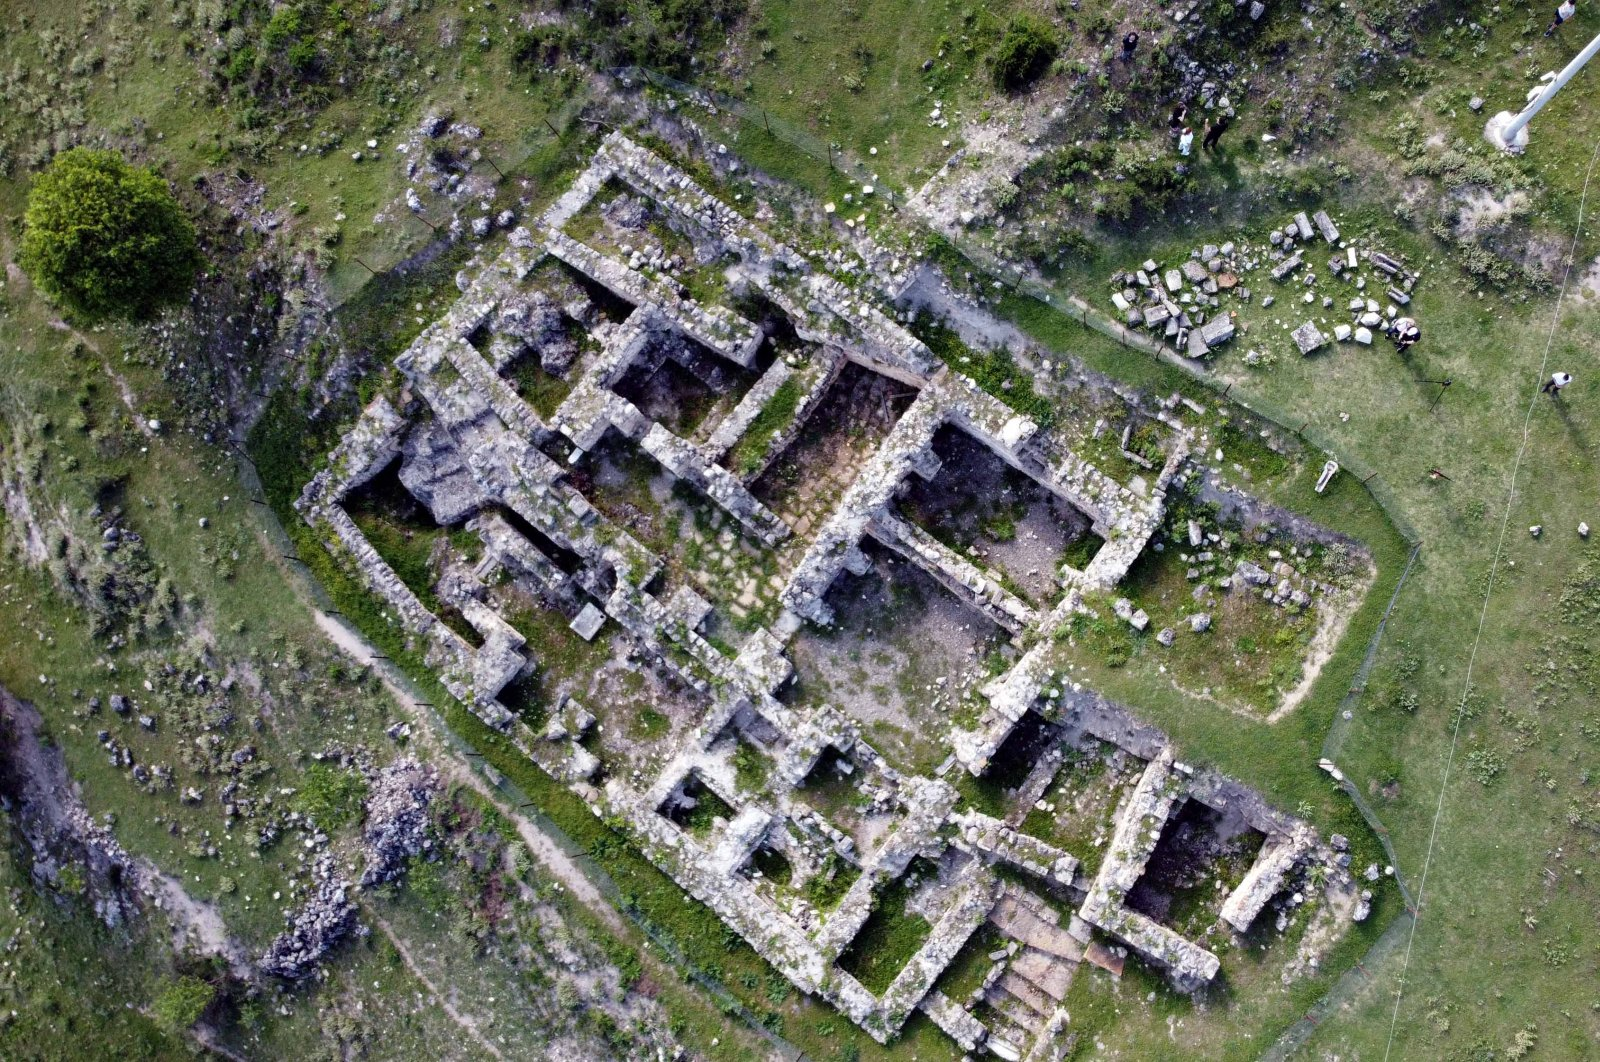 An aeriel view from the ancient city of Hadrianopolis. (AA PHOTO)